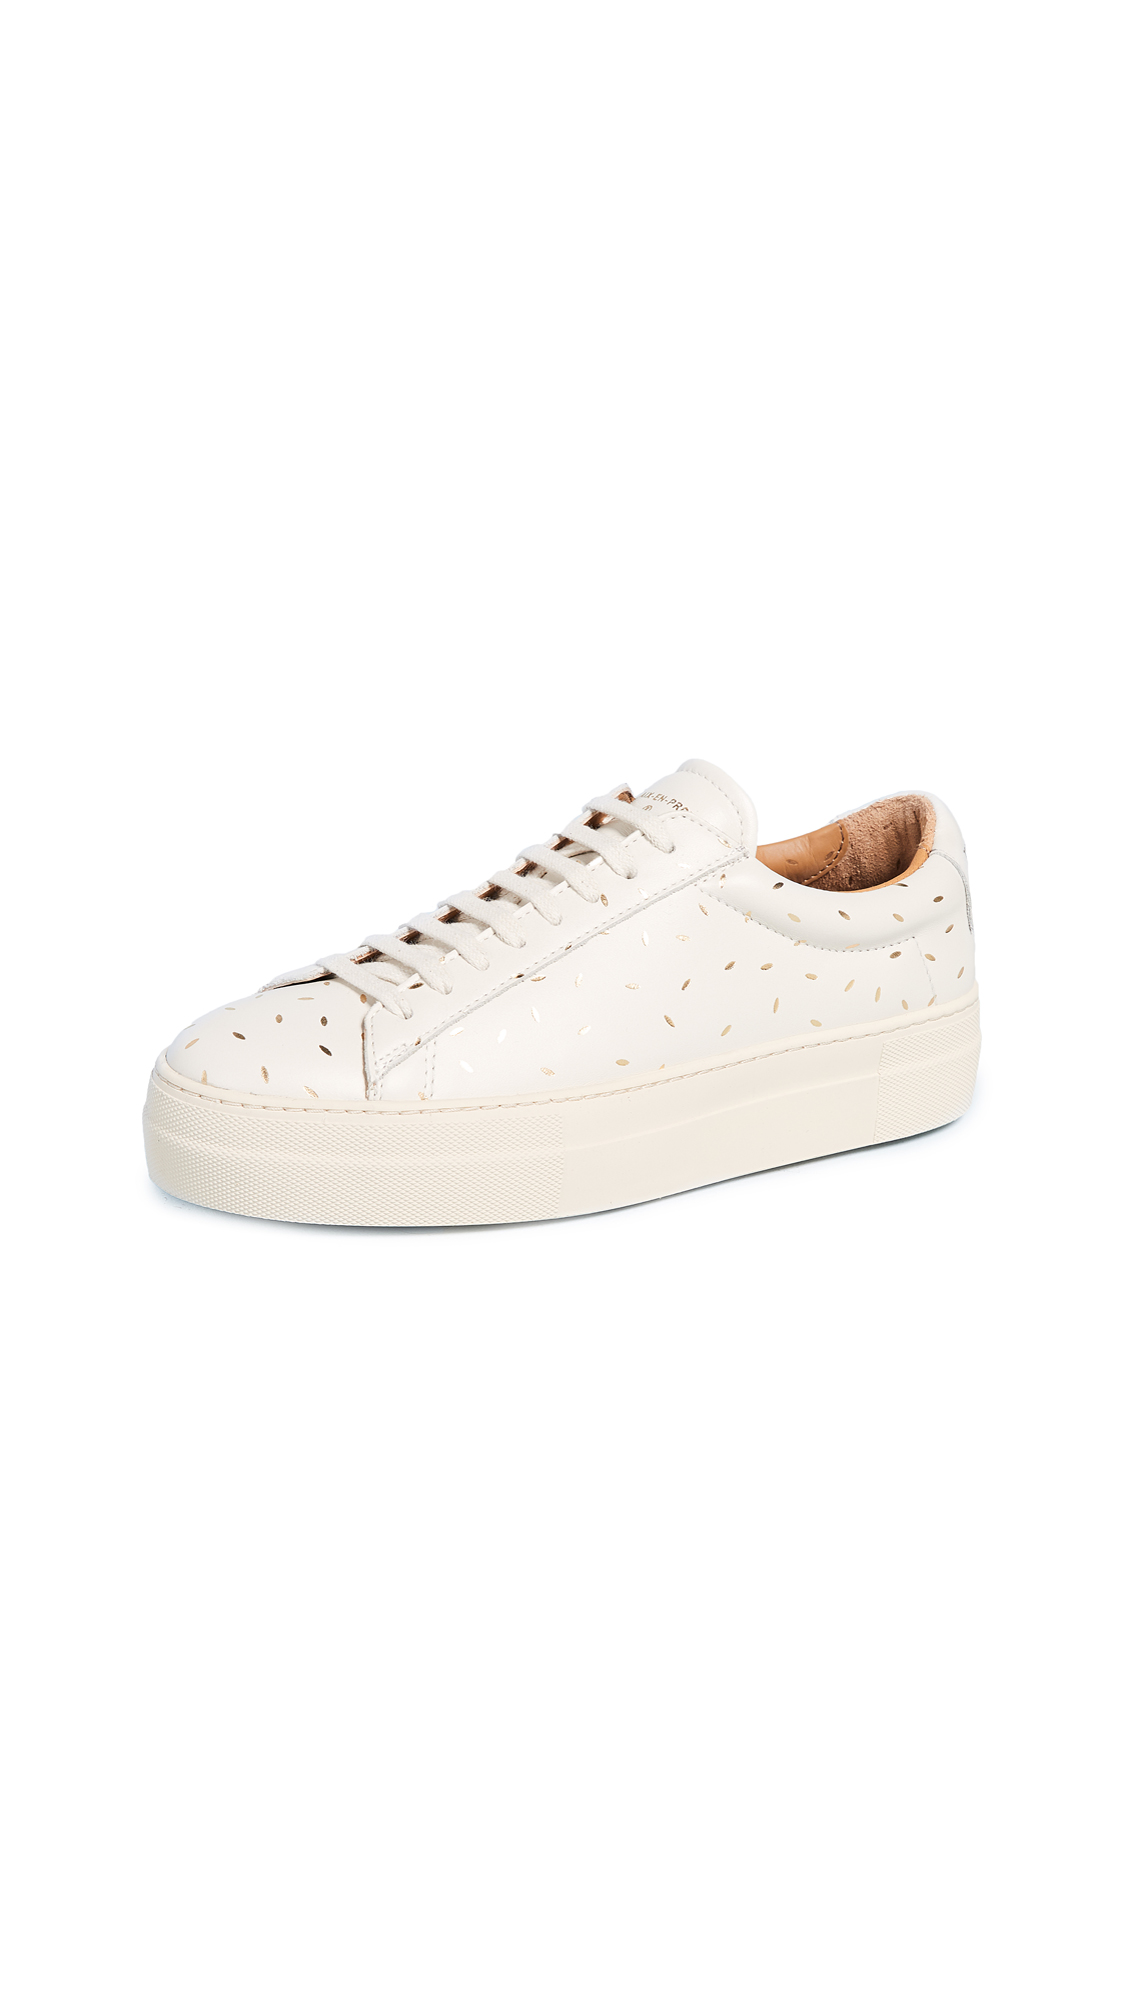 Zespa Laceup Platform Sneakers - Supakitch/Off White